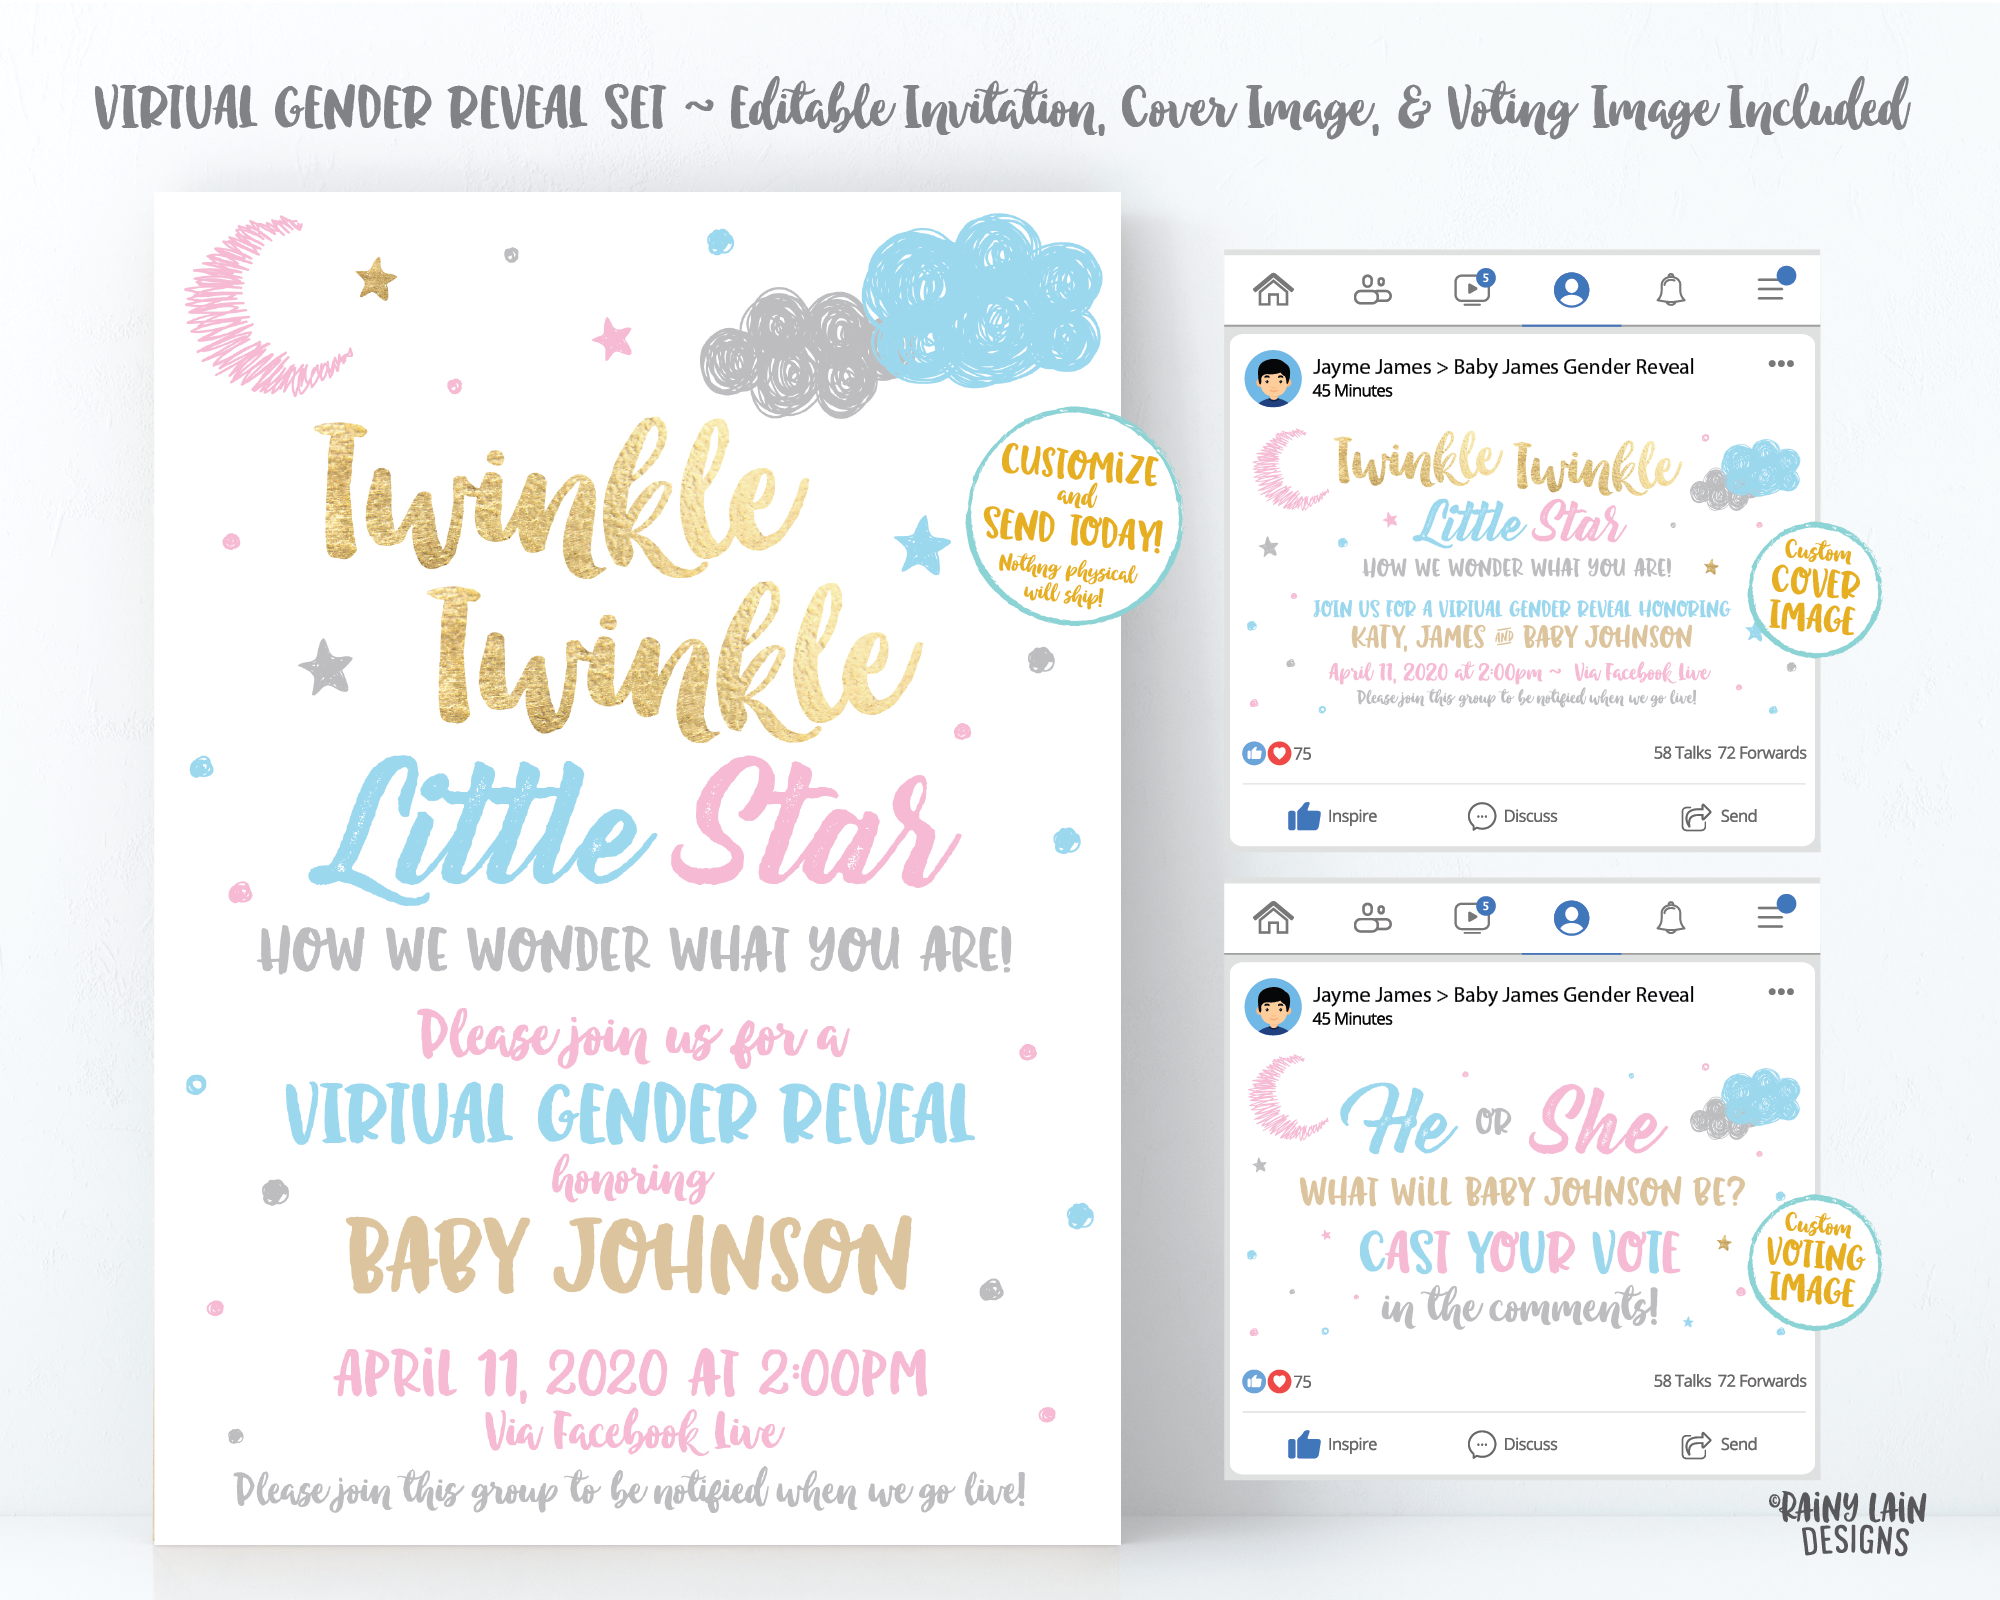 Social Media Gender Reveal, Virtual Gender Reveal Invite, Cover Photo, Live Video, Long Distance, Twinkle Twinkle Little Star How We Wonder